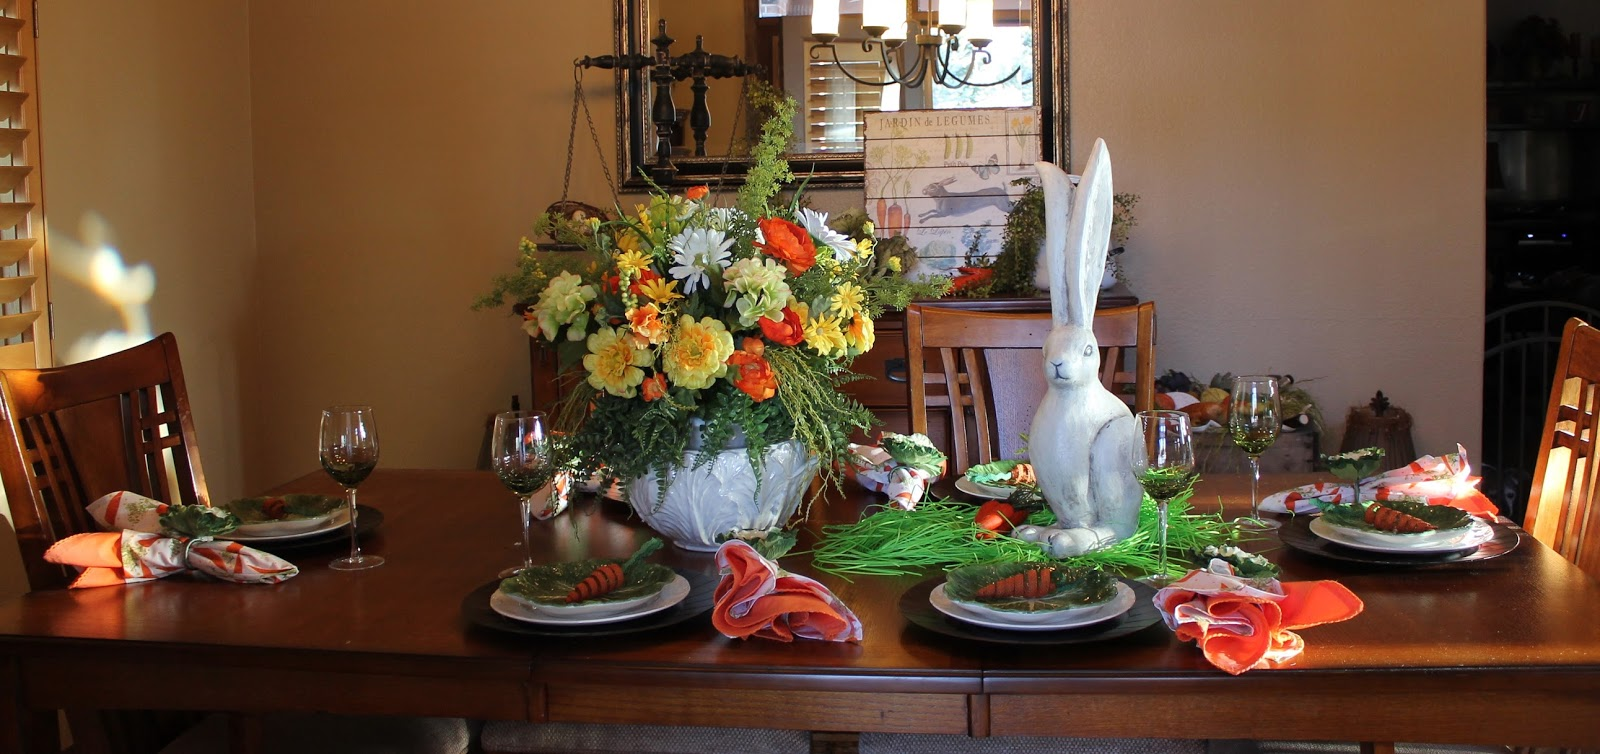 Southern seazons spring tablescape in the dining room for Dining room tablescapes ideas